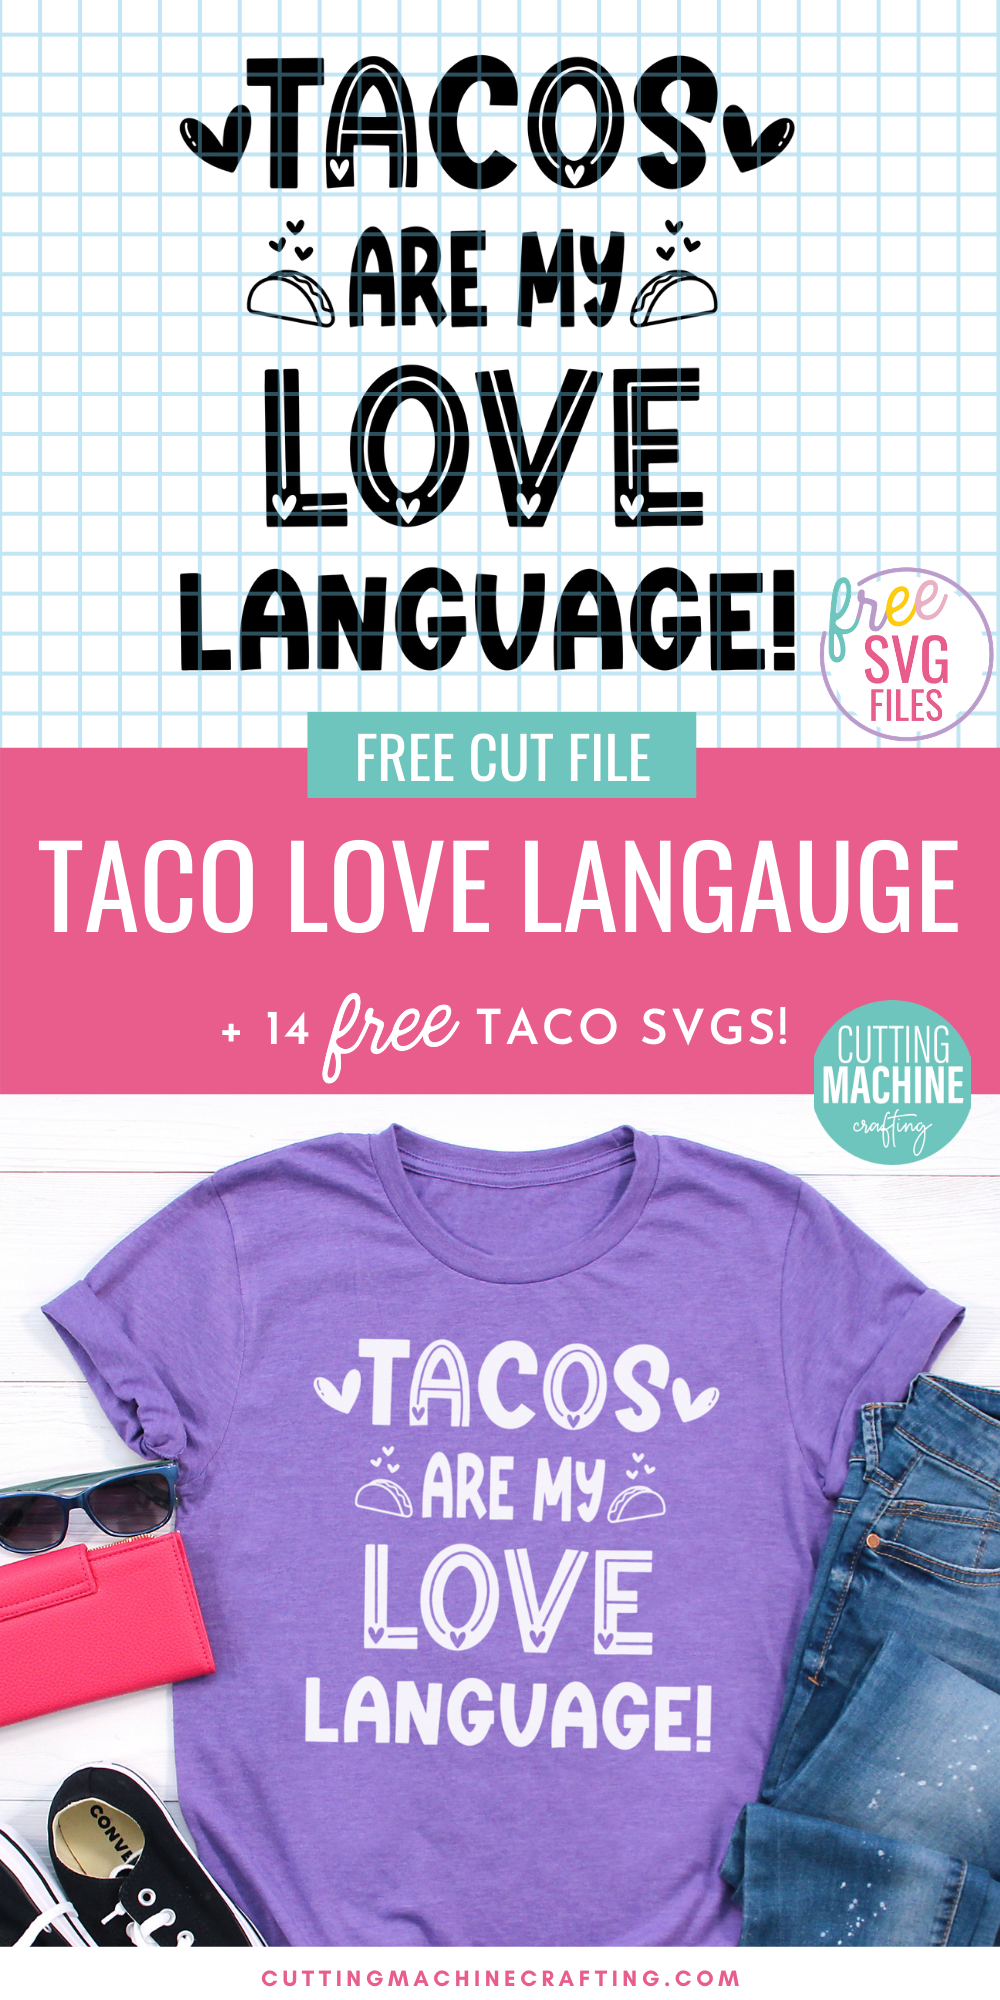 If you love tacos as much as I do, then you are going to want to grab these 14 free taco cut files including a Tacos Are My Love Language SVG! Make shirts, tank tops, mugs, beach bags and more using your Cricut Maker, Cricut Explore Air 2, Cricut Joy or other electronic cutting machine to express just how taco crazy you are!